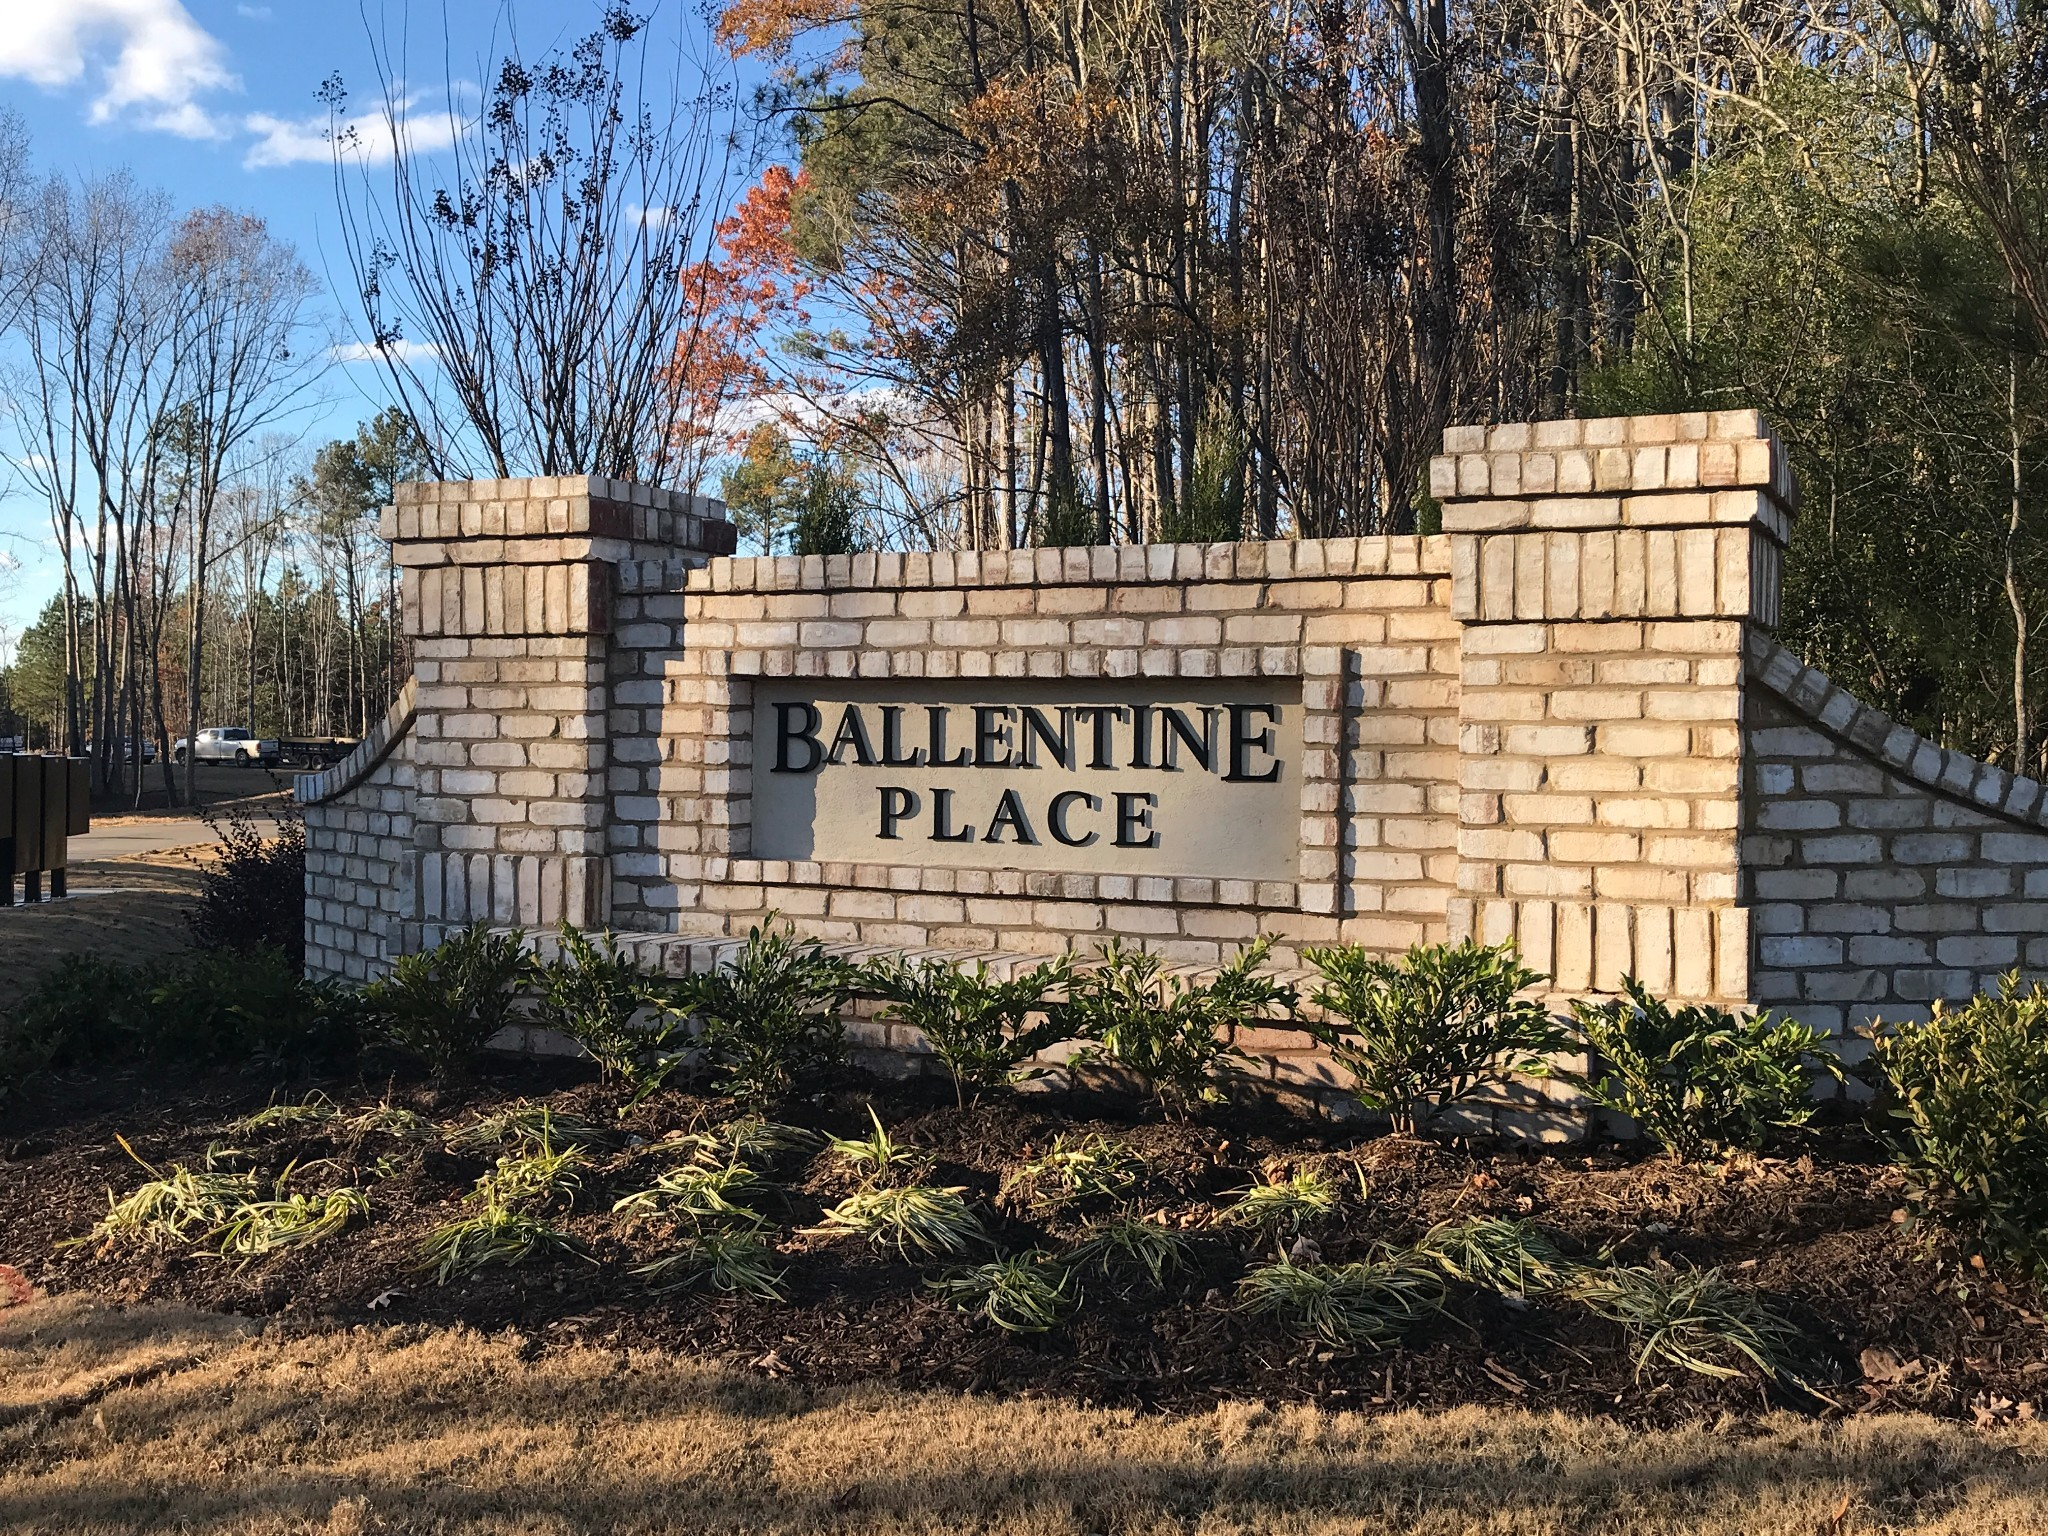 Ballentine Place, Holly Springs NC - From the low to mid $400's